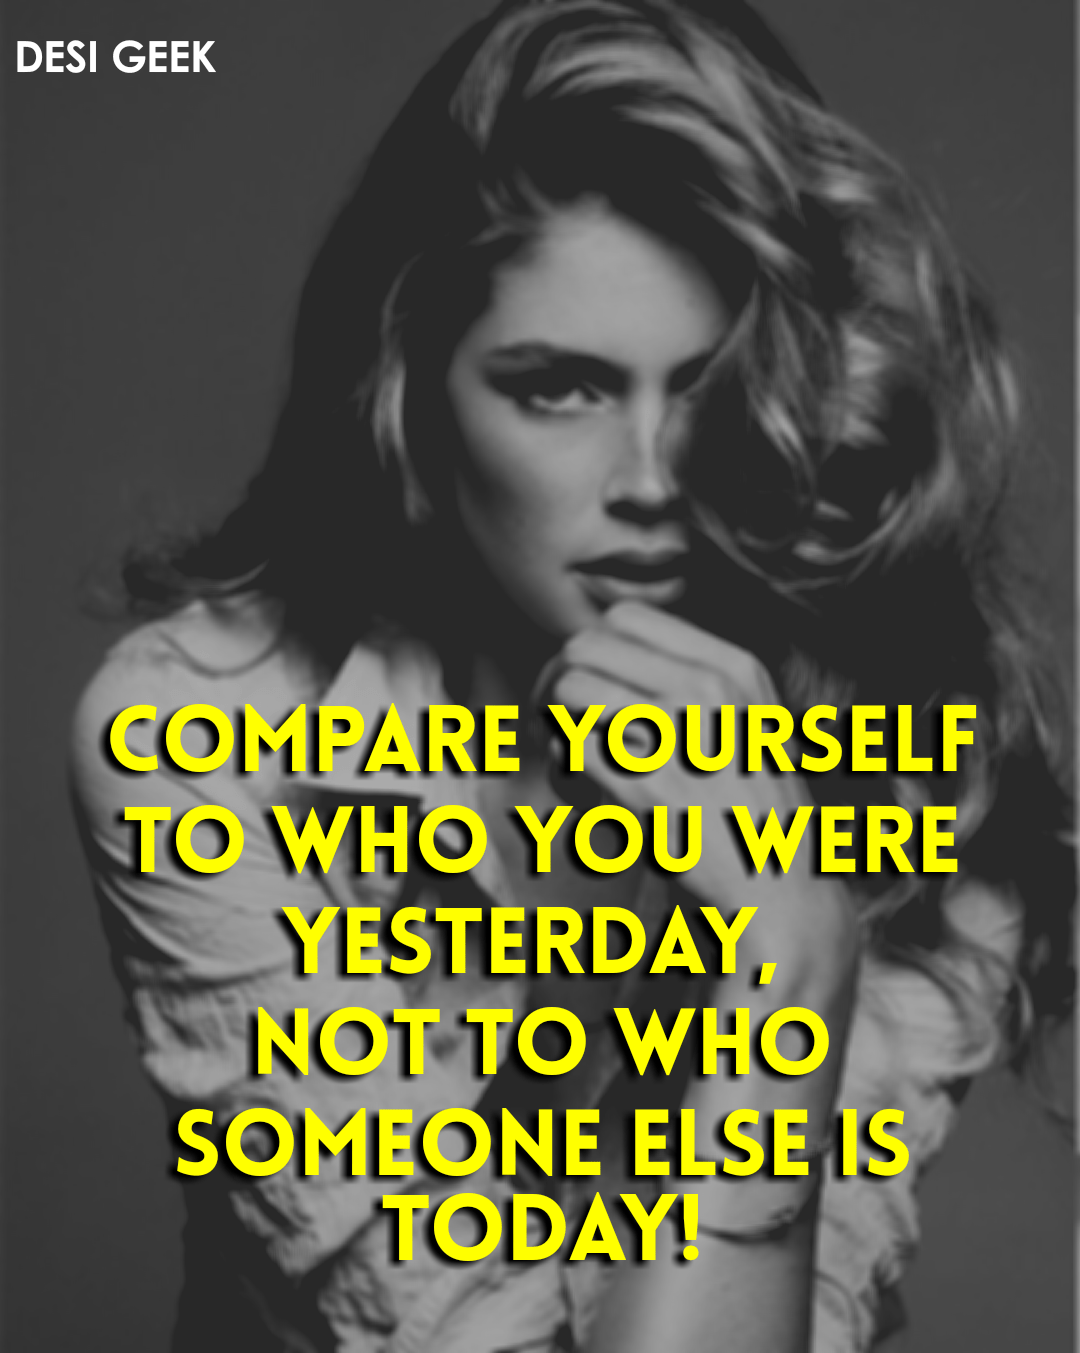 Compare yourself to who you were yesterday, not to who someone else is today. – Jordan Peterson, Source : https://ift.tt/2JfWv8A